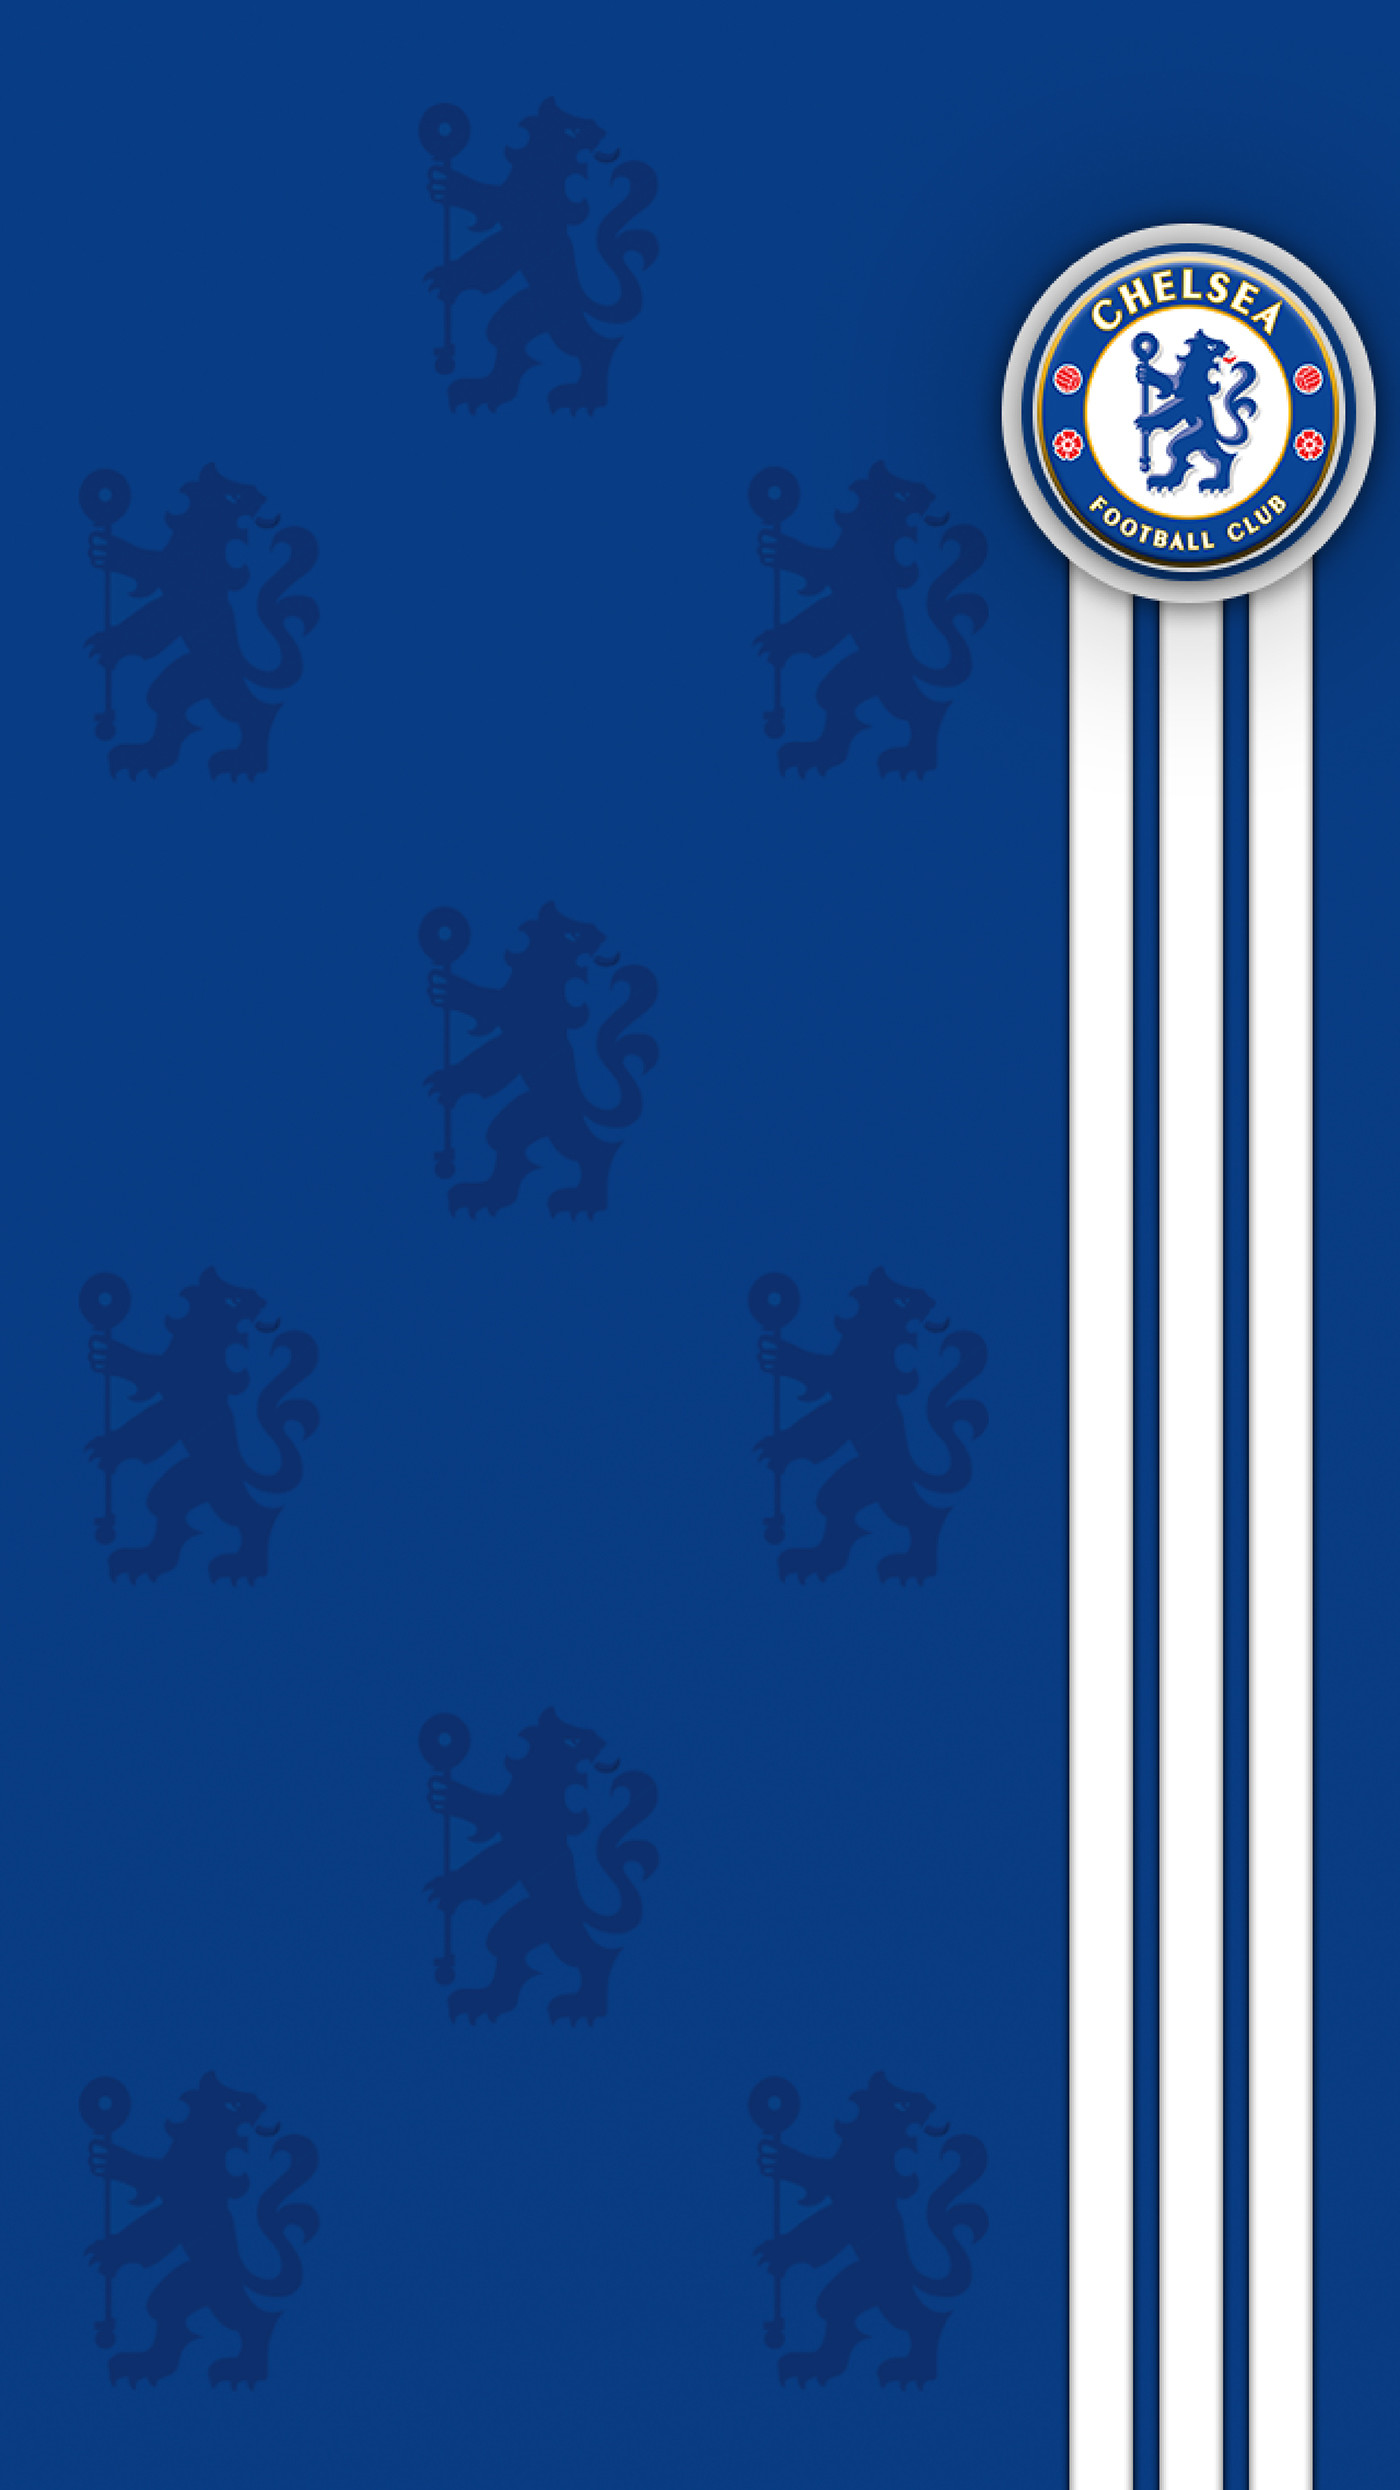 Chelsea Wallpaper 2017 Hd